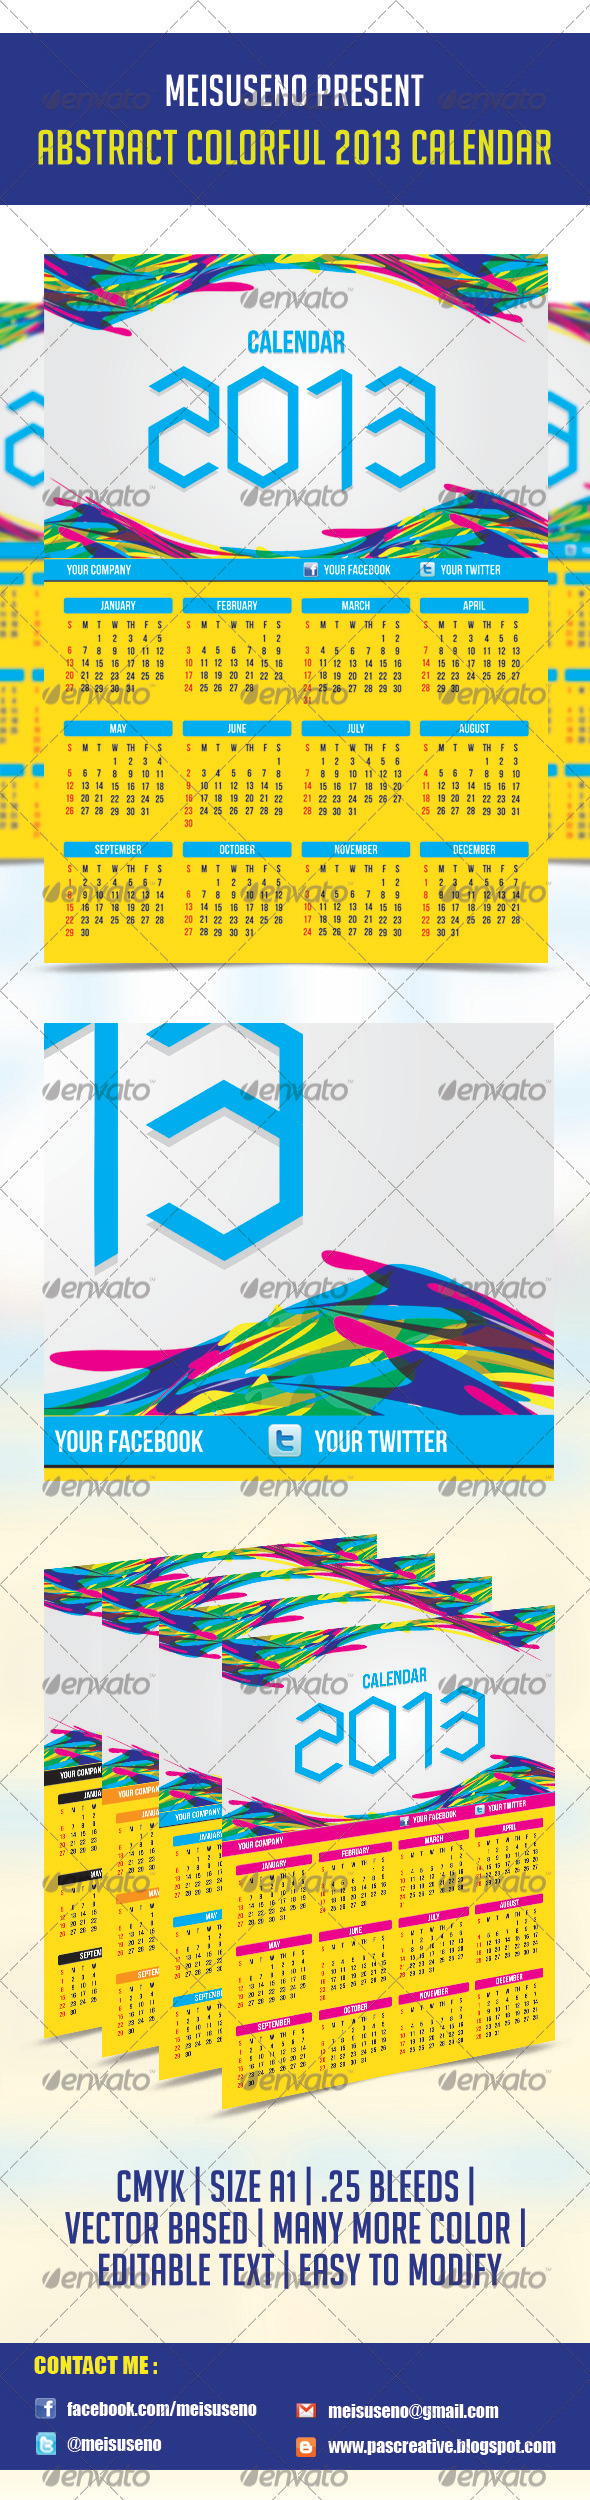 Abstract Colorful 2013 Calendar Template - Calendars Stationery